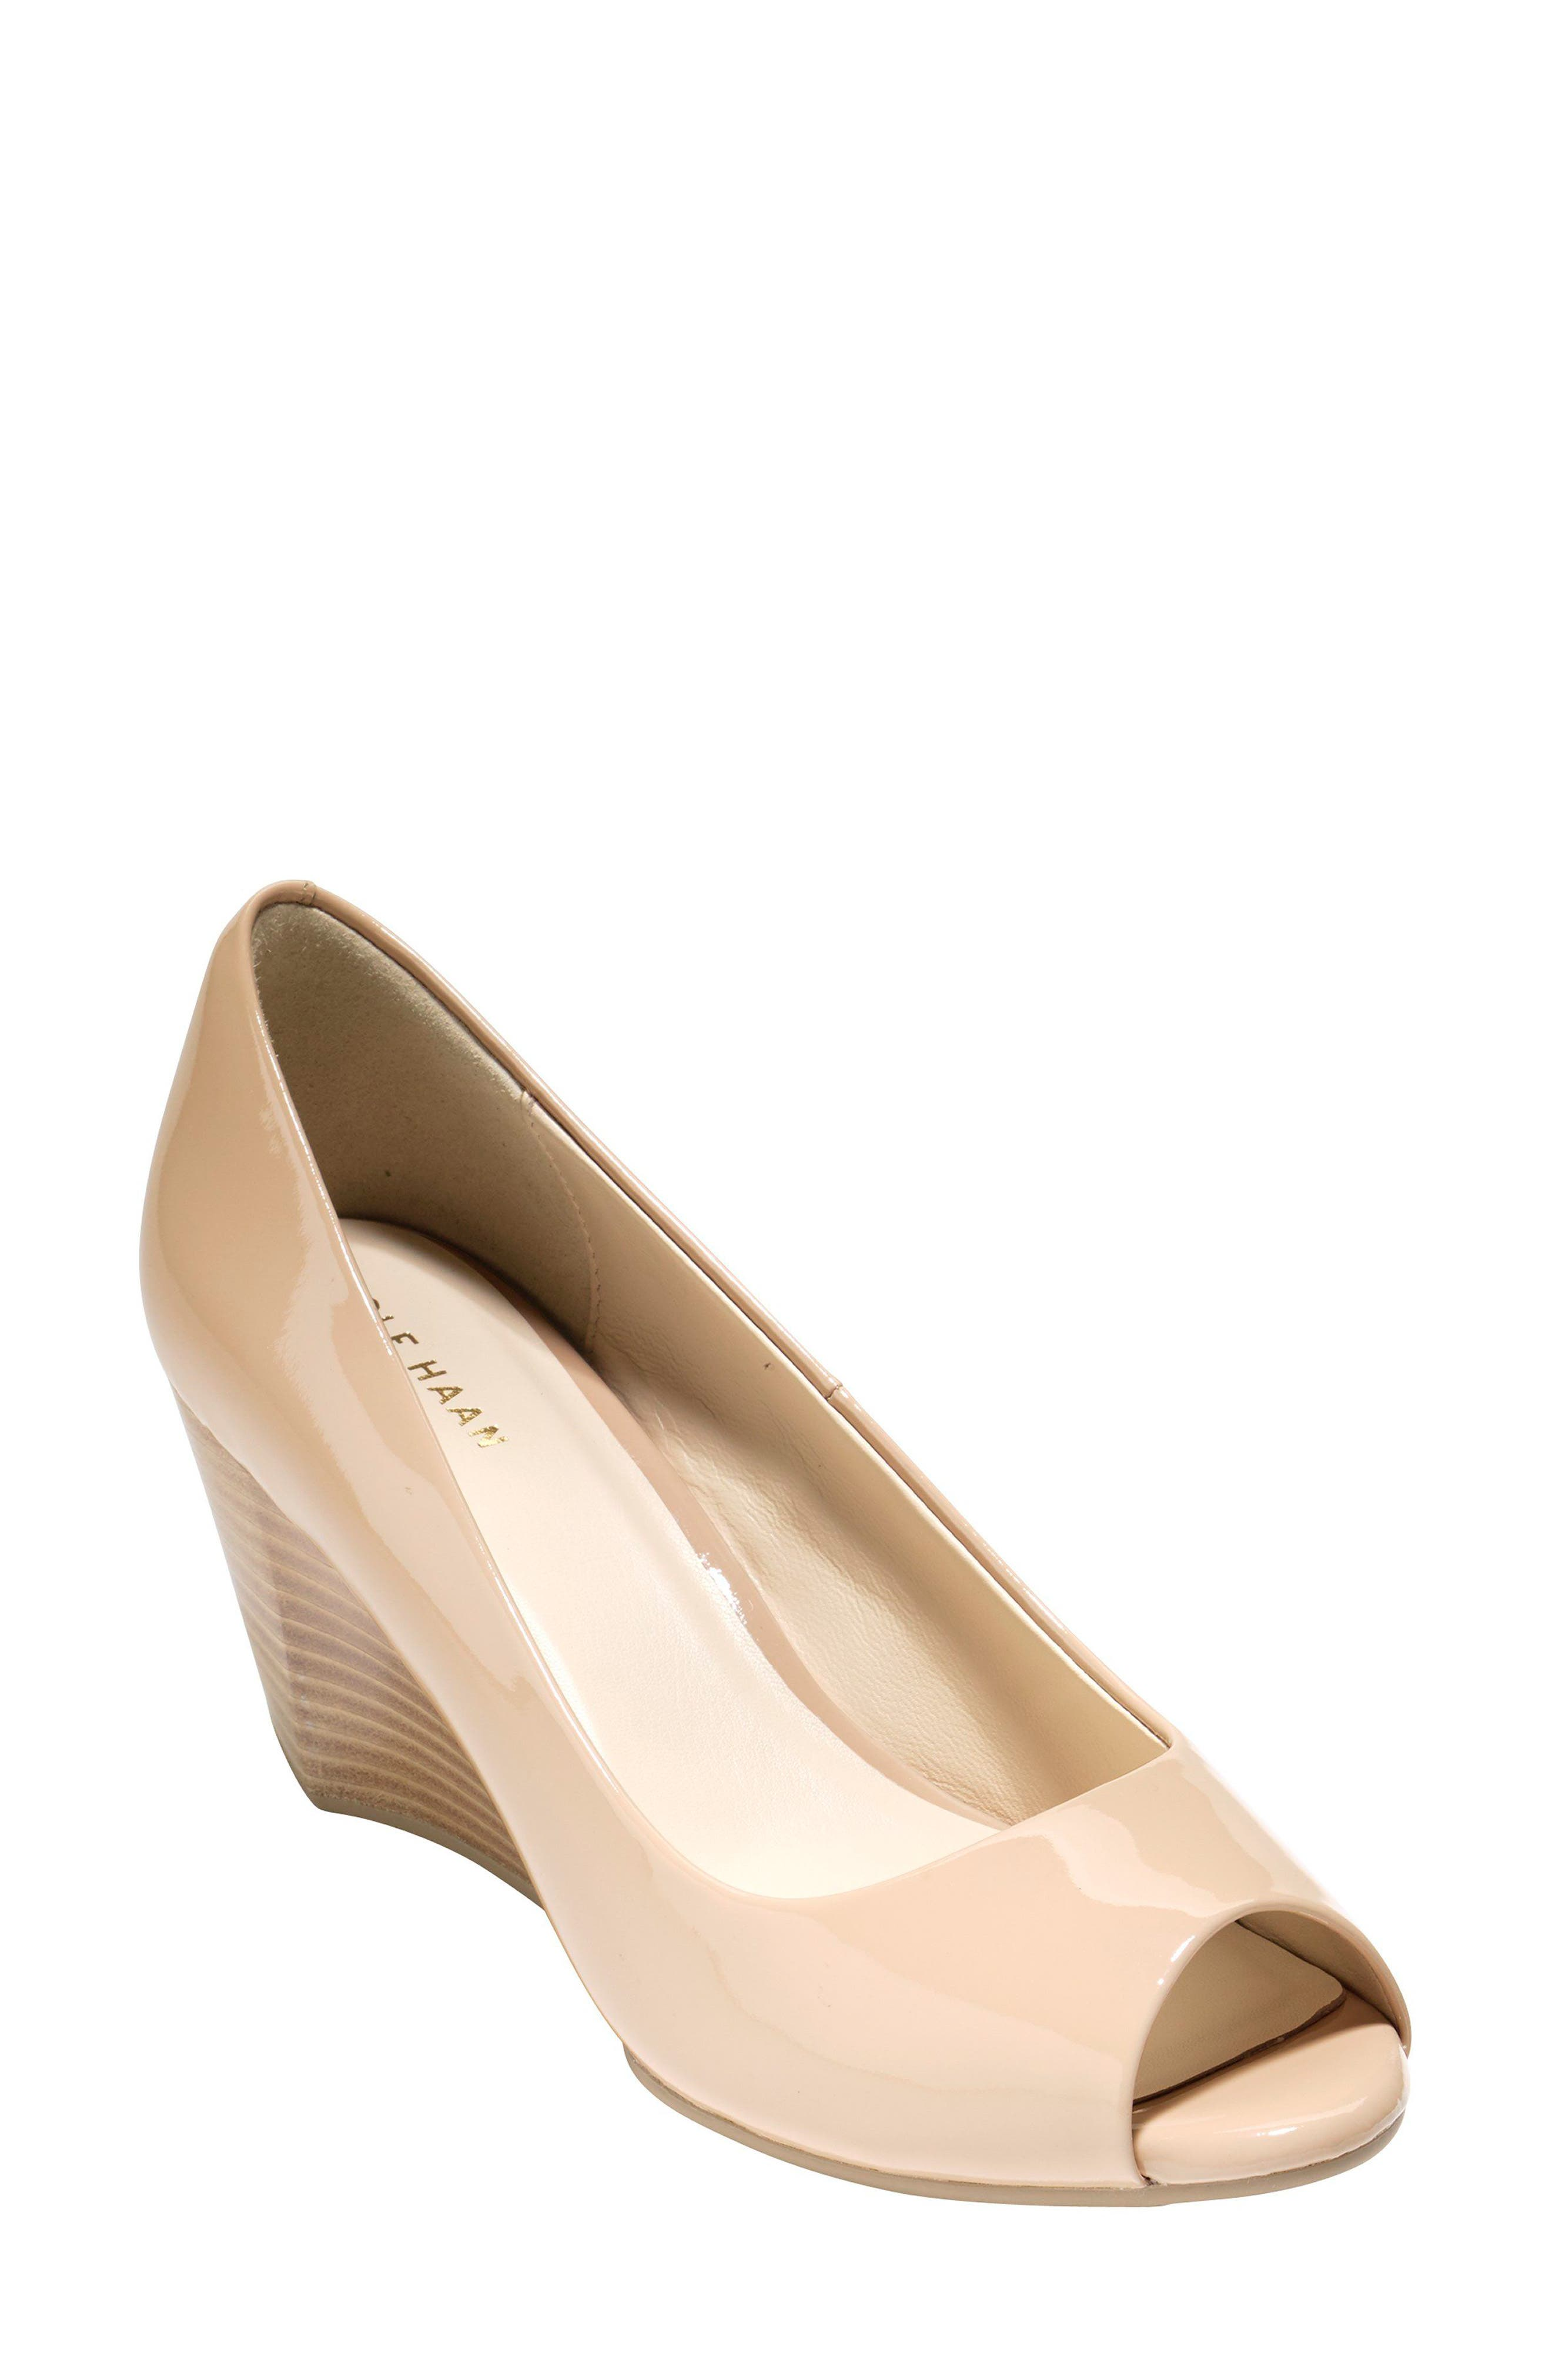 Sadie Open Toe Wedge Pump,                             Alternate thumbnail 3, color,                             NUDE PATENT LEATHER